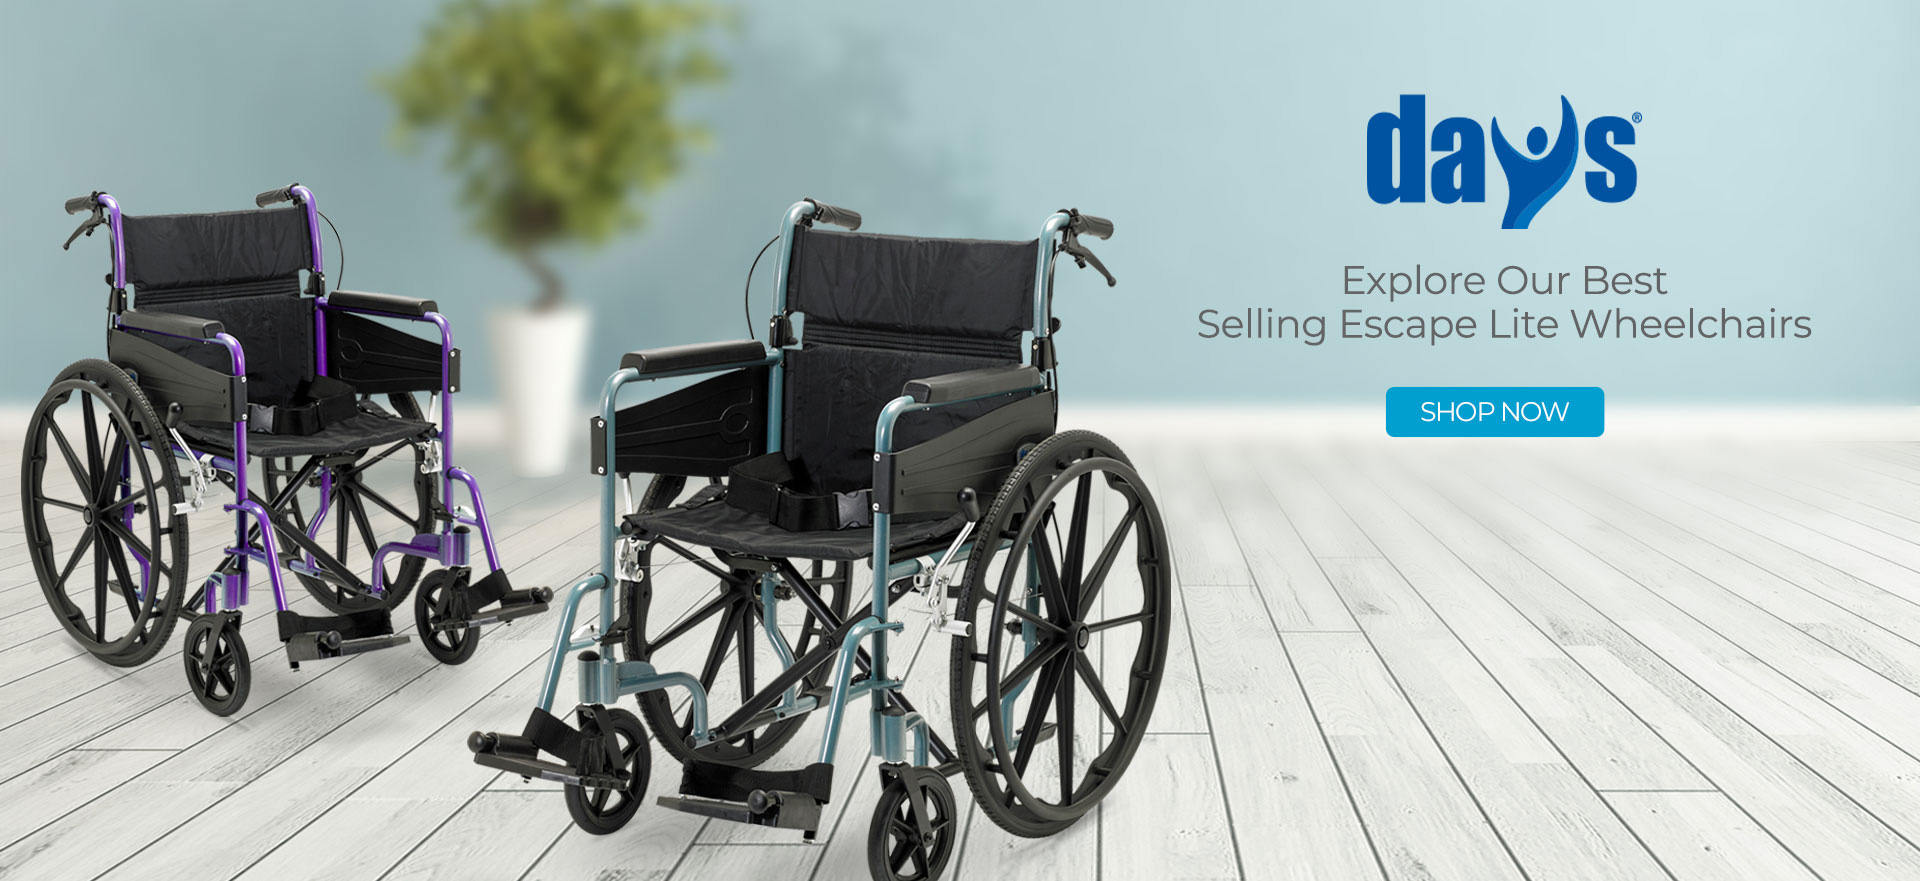 Days Escape Range and Wheelchair Accessories